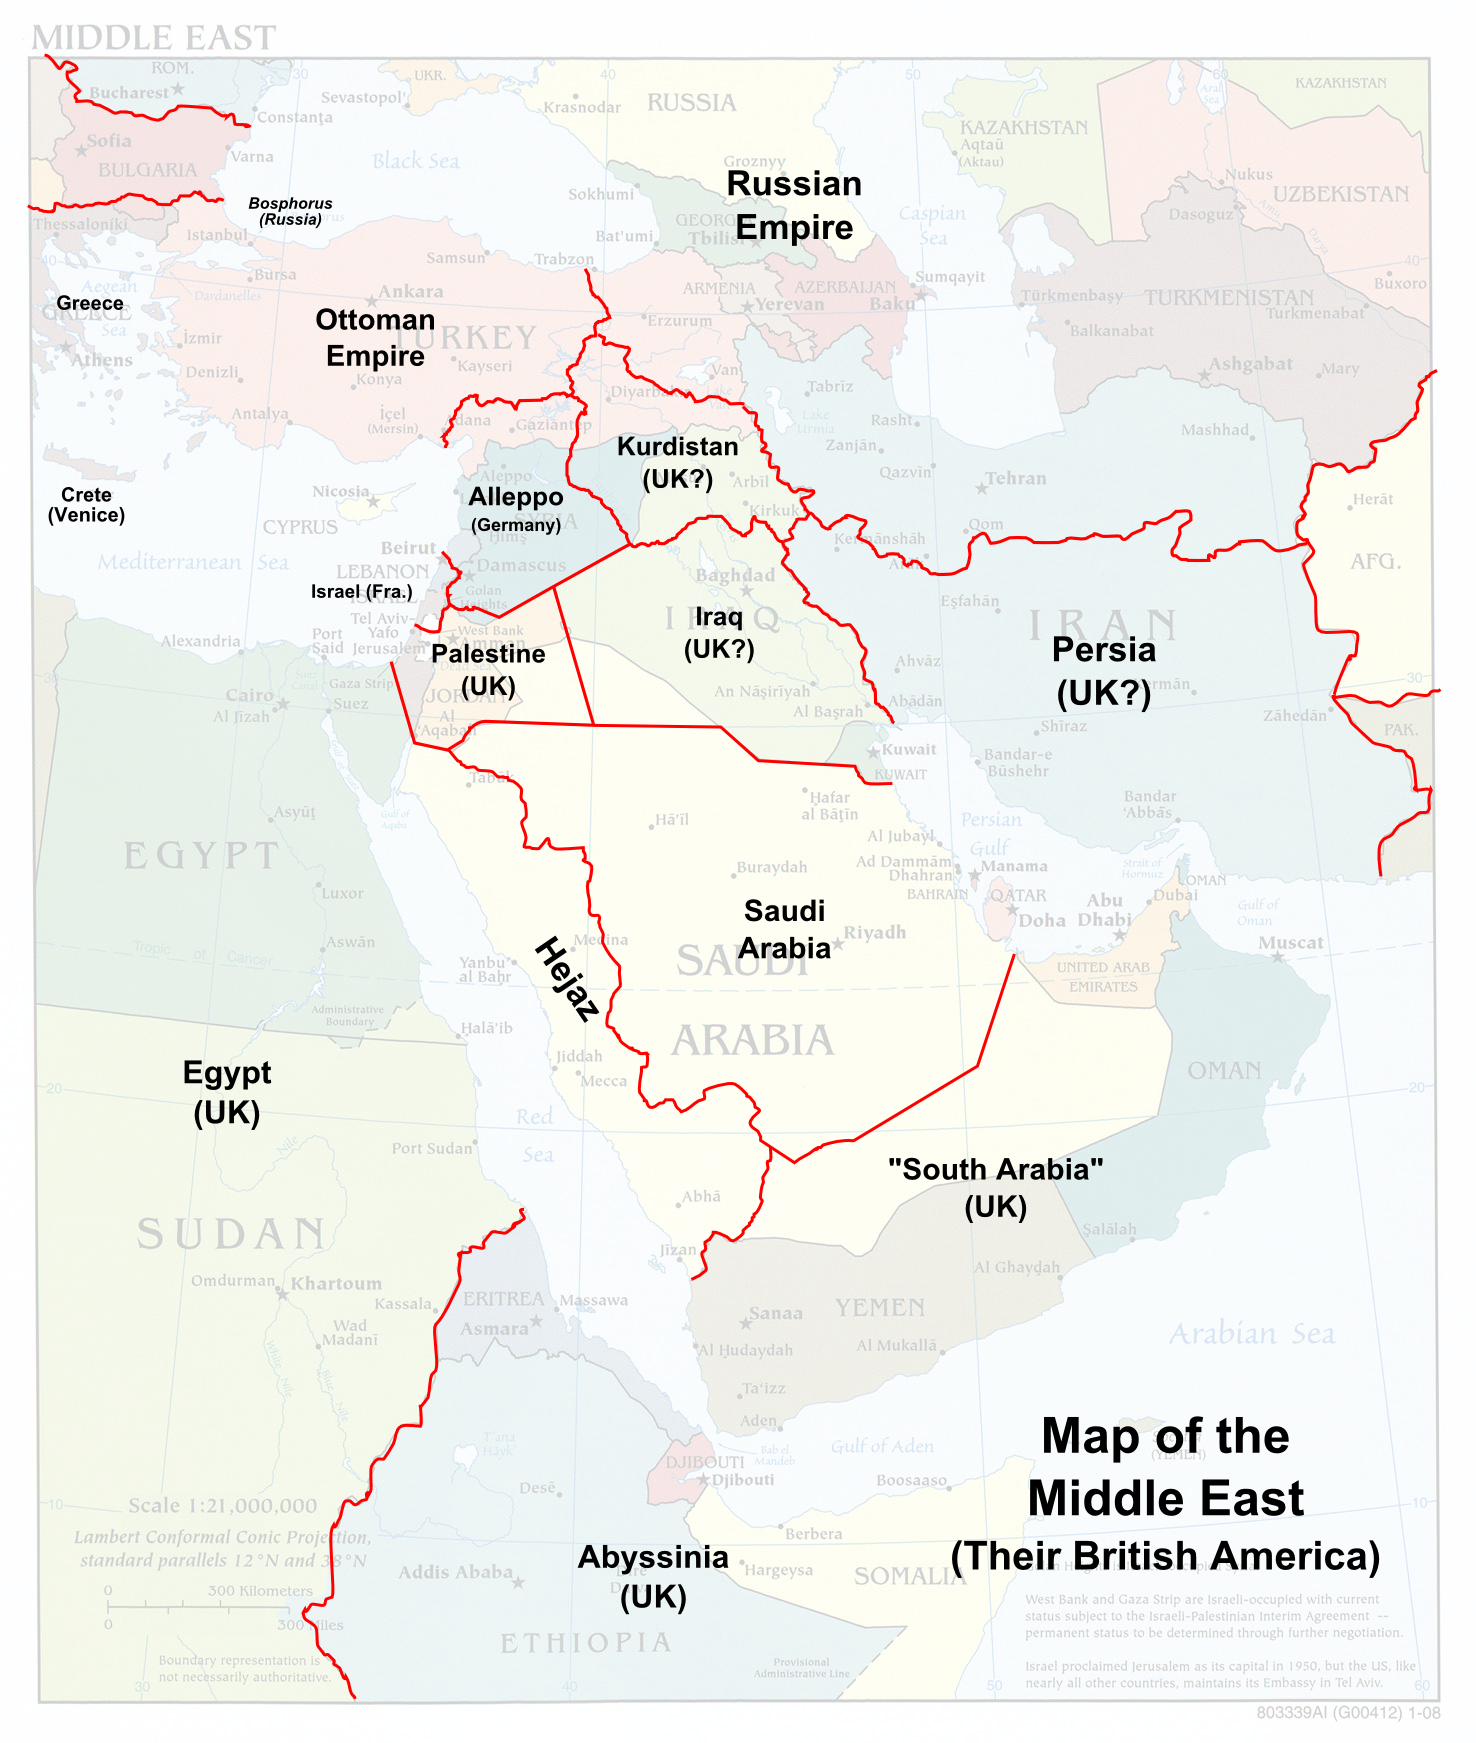 Image   Map of the Middle East (Their British America).png